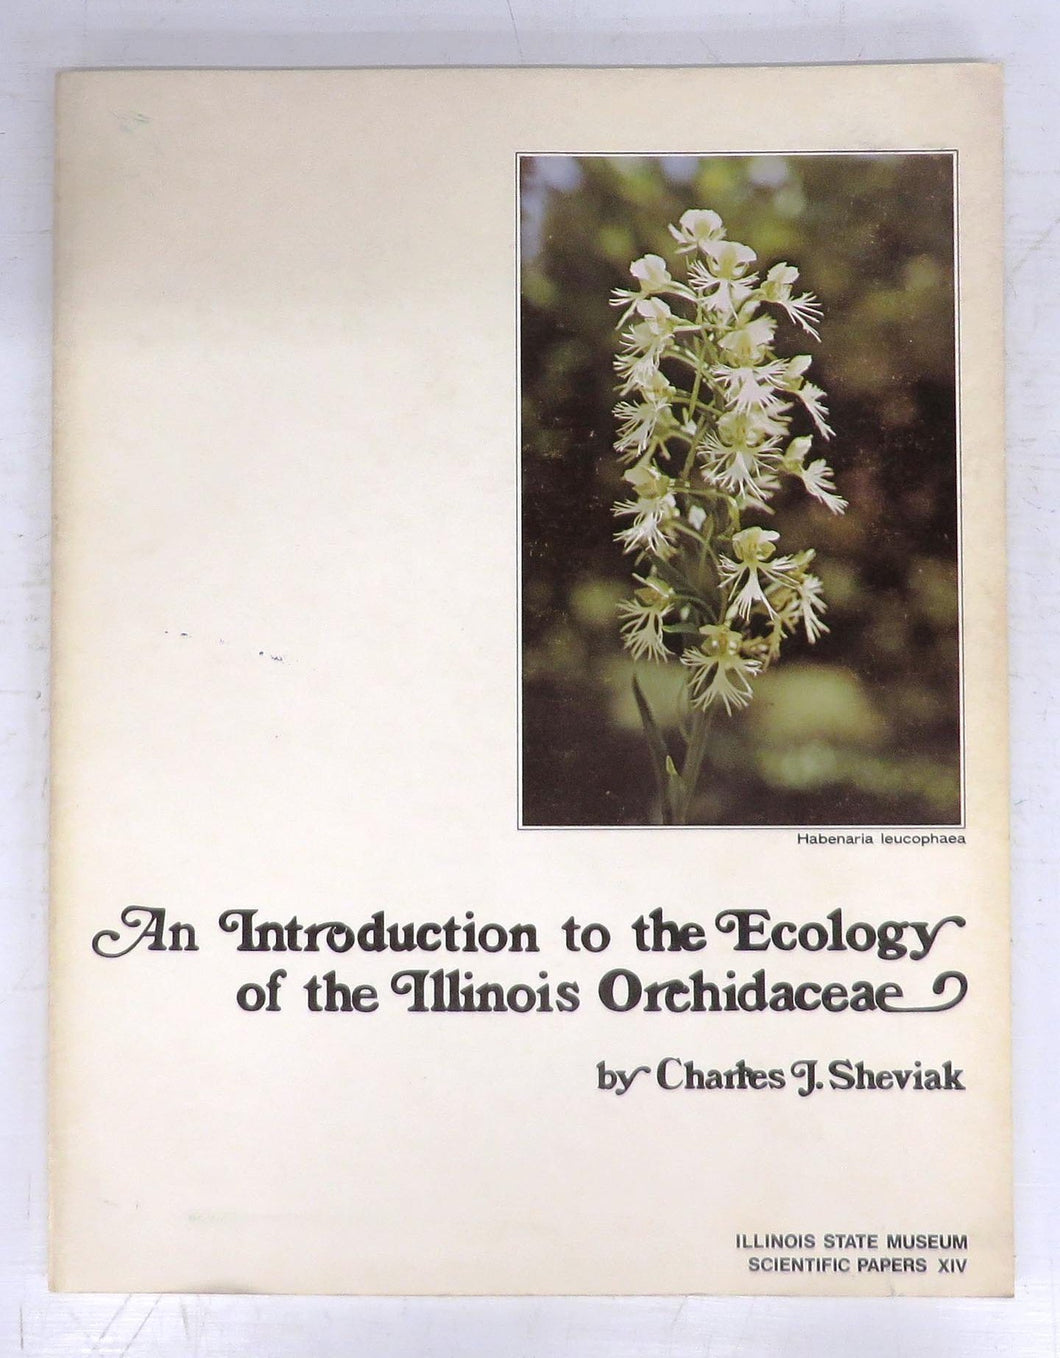 An Introduction to the Ecology of the Illinois Orchidaceae